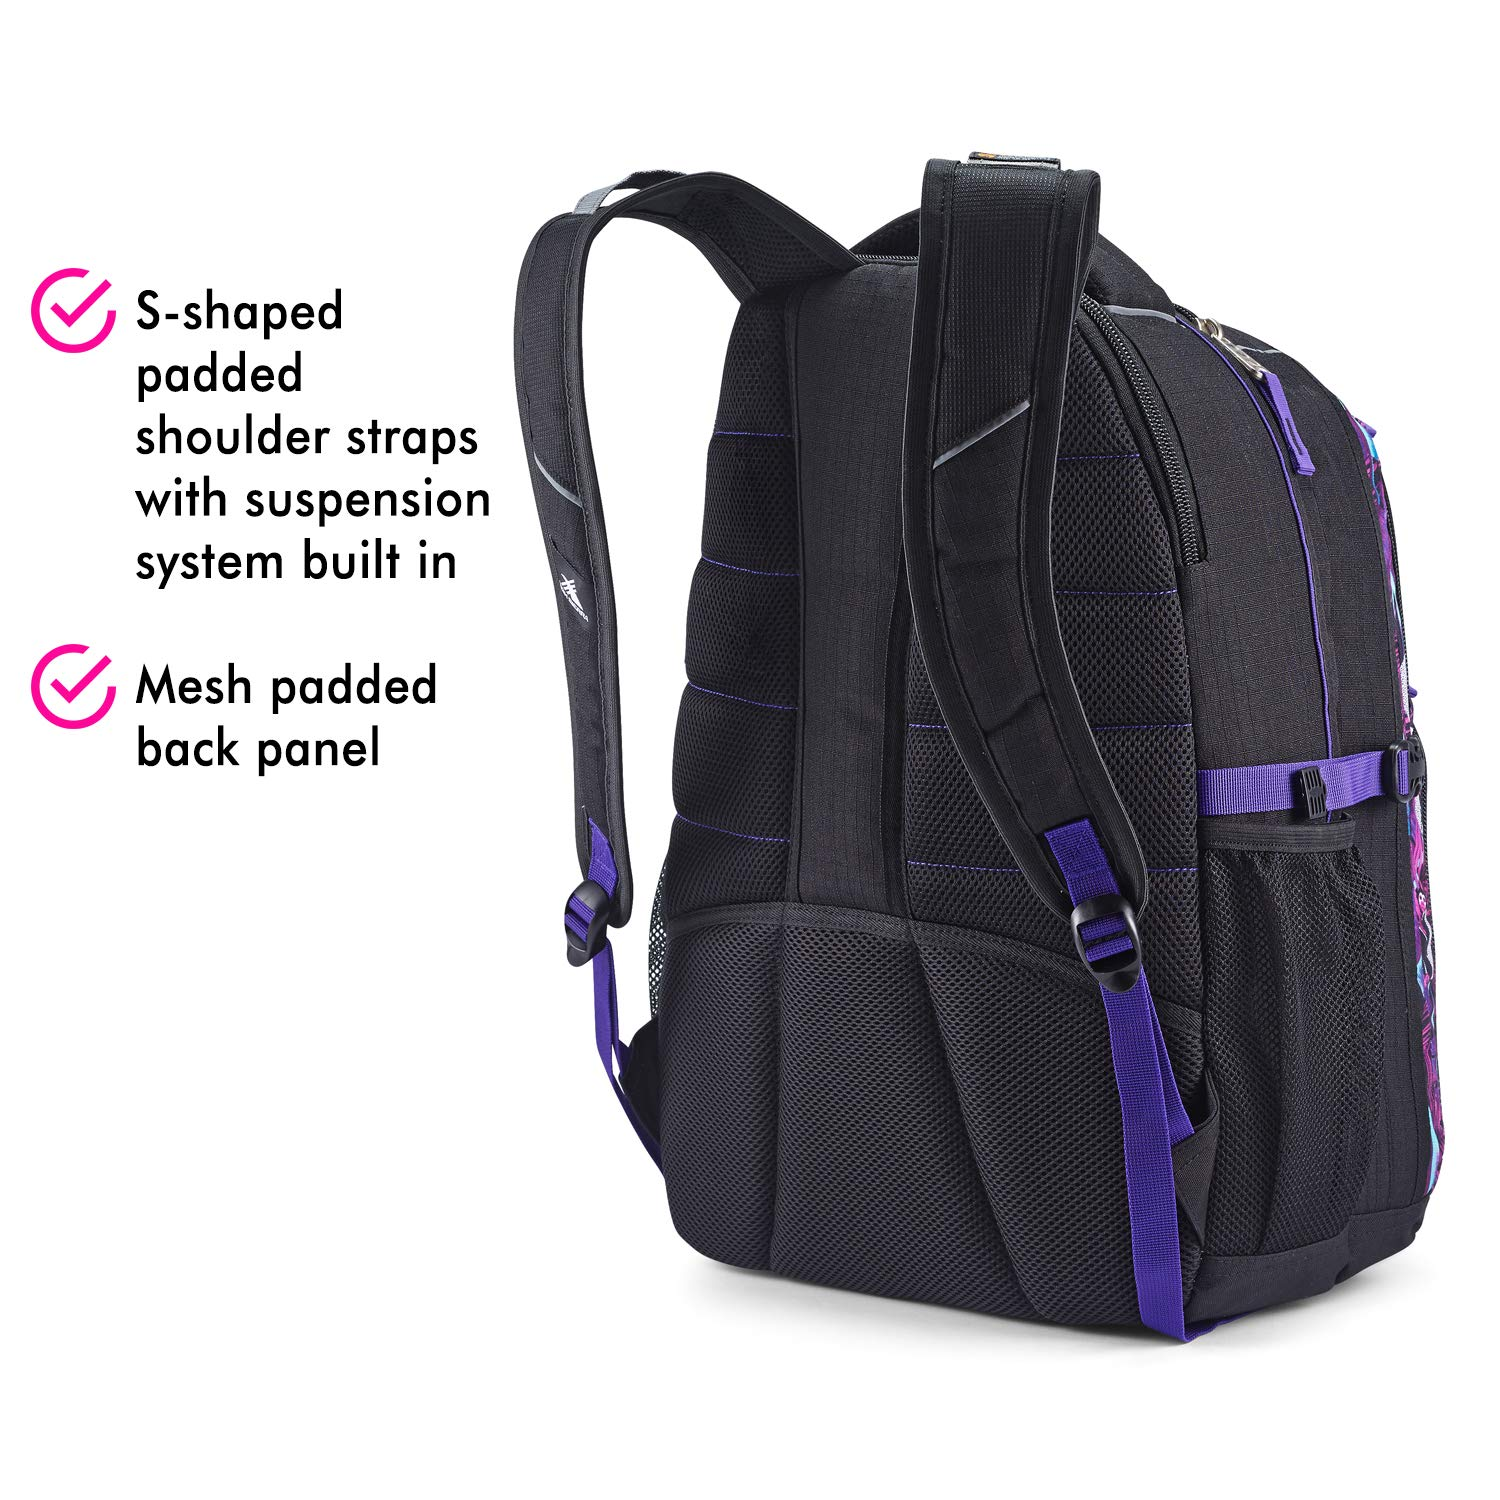 High Sierra Swerve Laptop Backpack, 17-inch Laptop Backpack for High School or College, Ideal Gaming Laptop Backpack, Large Compartment Student Laptop Backpack with Organizer Pocket by High Sierra (Image #5)